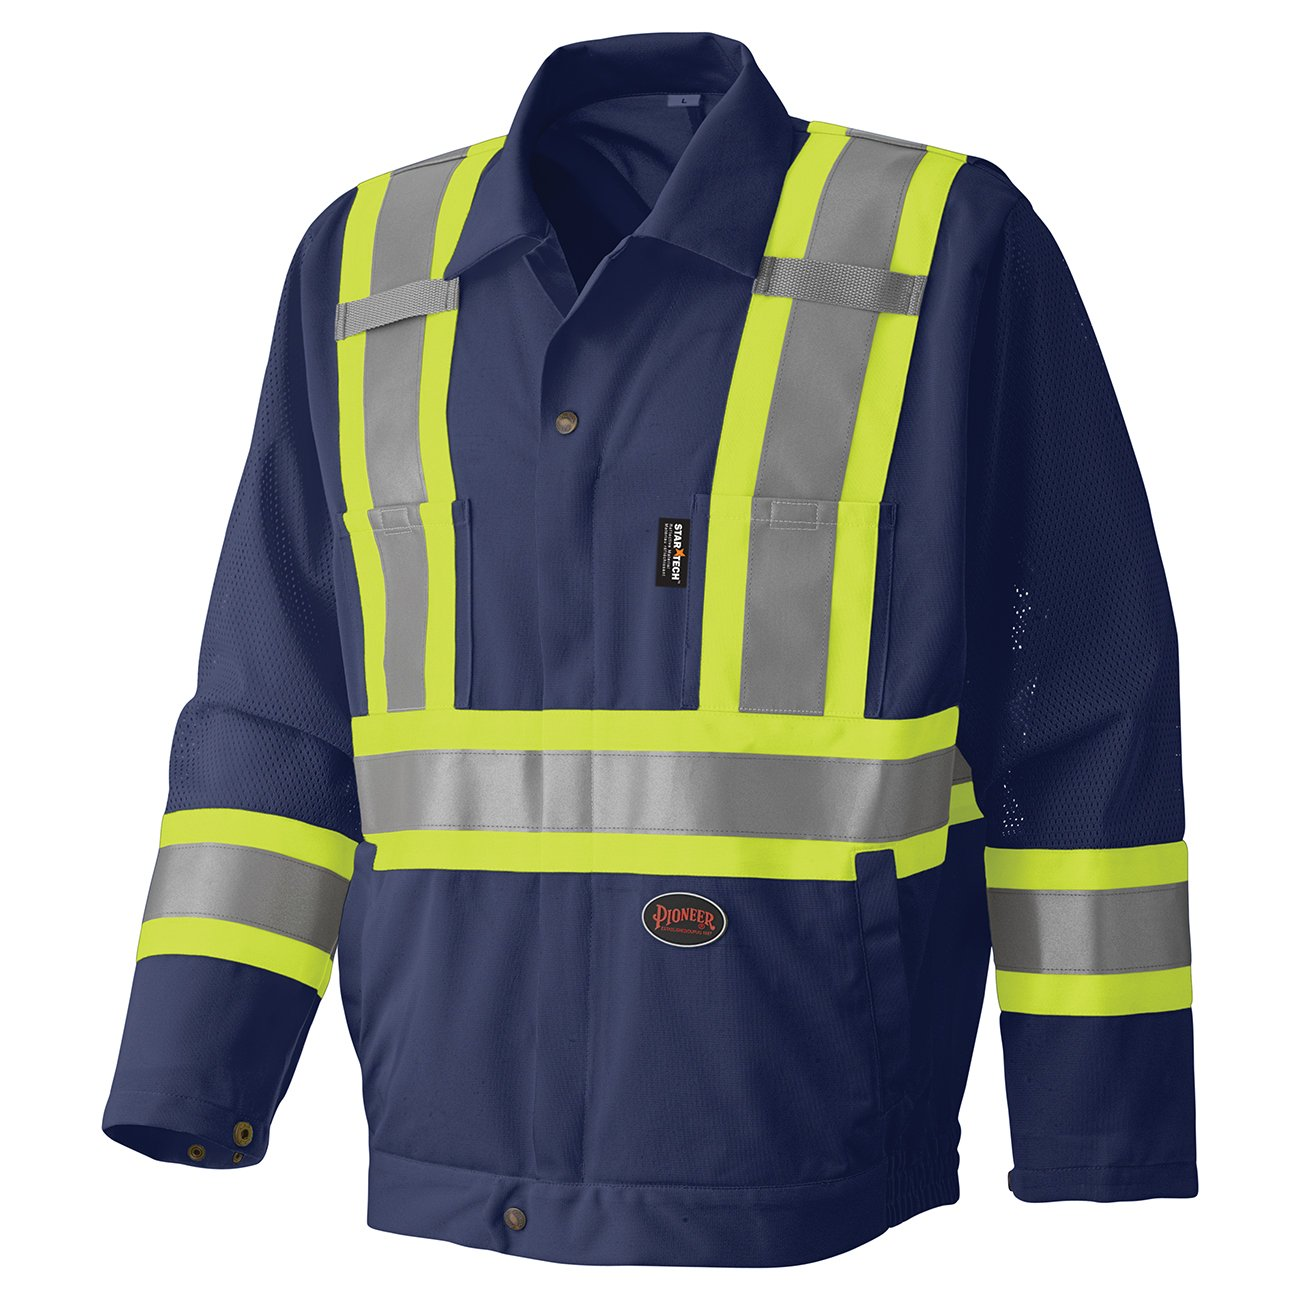 Pioneer Hi-Viz Traffic Safety Jacket V1070280 - 6003J